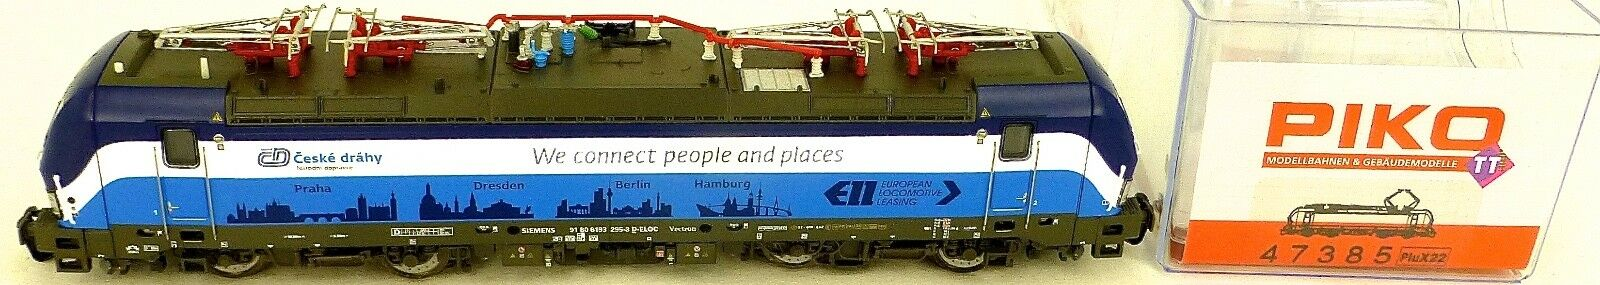 PIKO 47385 E-locomotive 193 Vectron CD Prague Berlin Hamburg TT 1:120 OVP µ